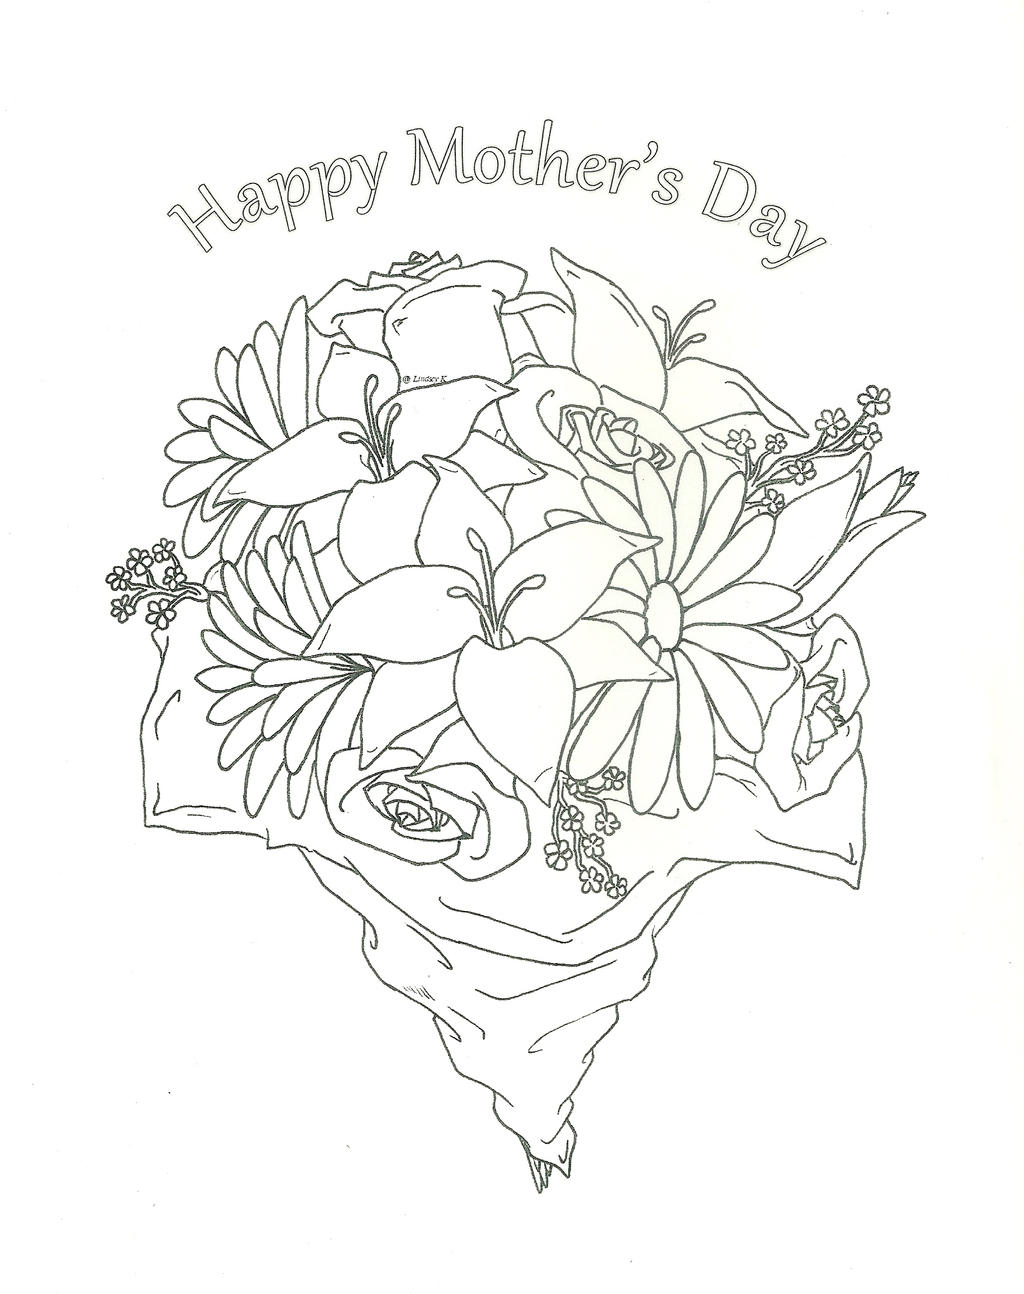 Happy Mother's Day card! by Imagin2heart on DeviantArt